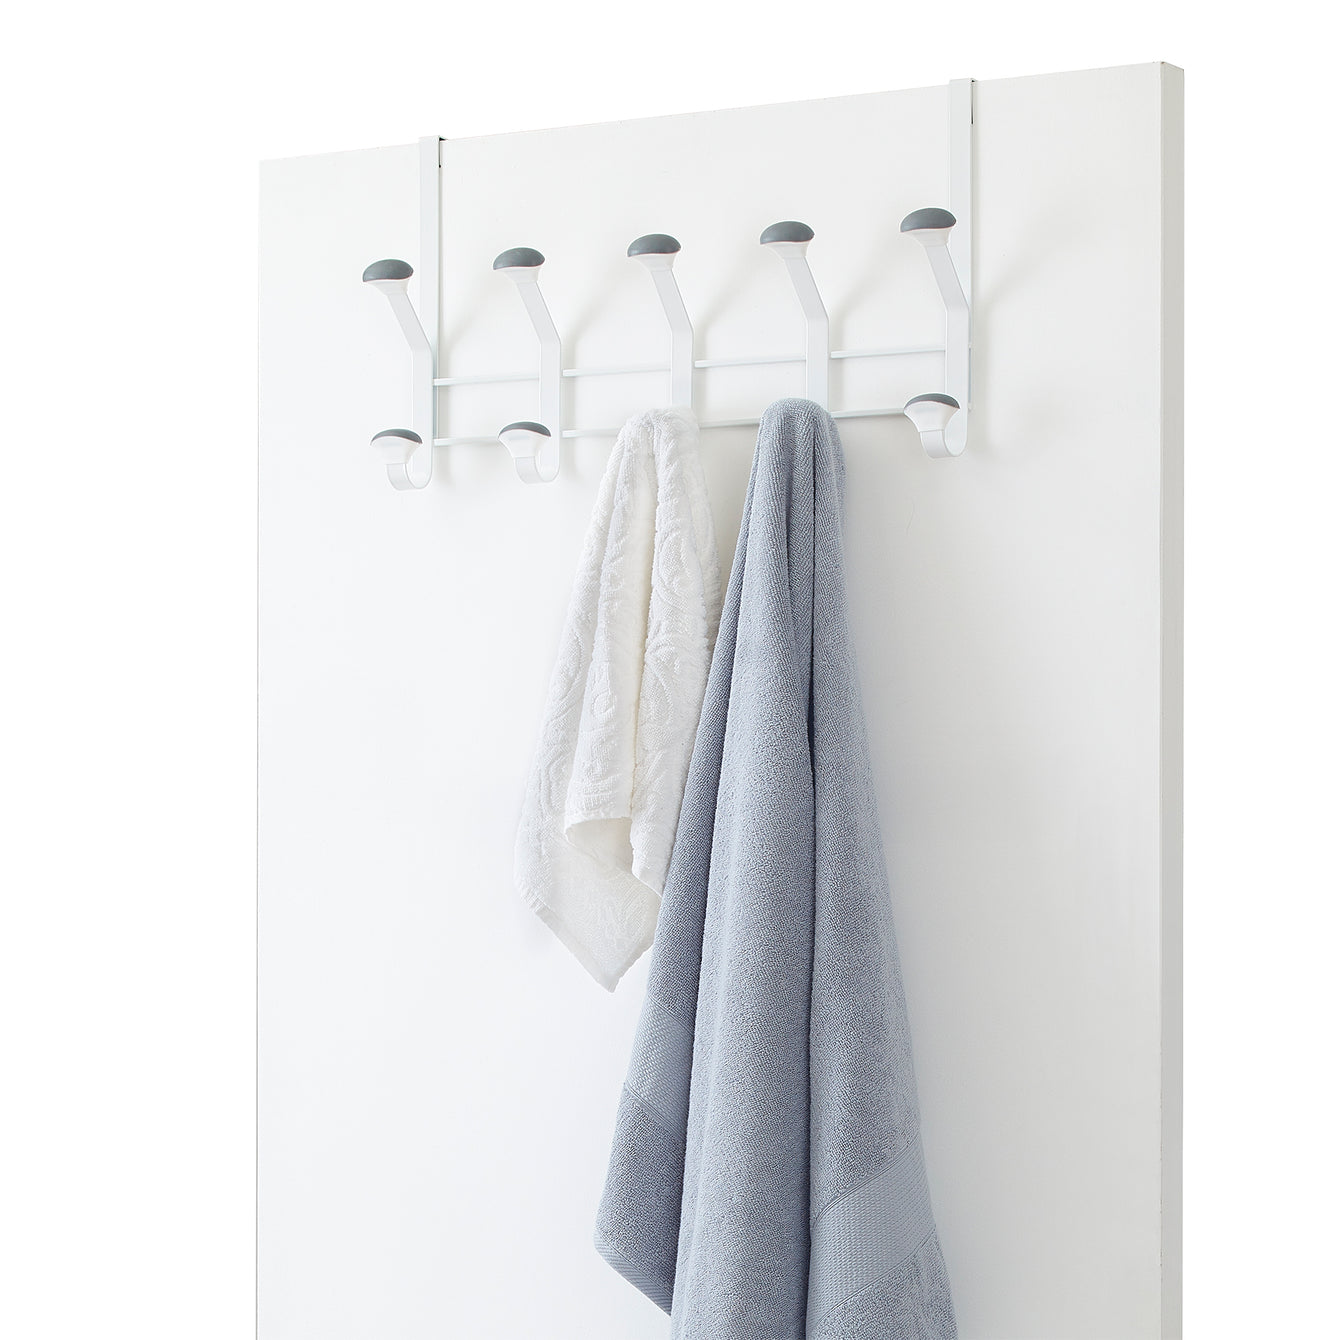 Linea Non-Slip Metal Over the Door 10 Peg Hook – Style 1012